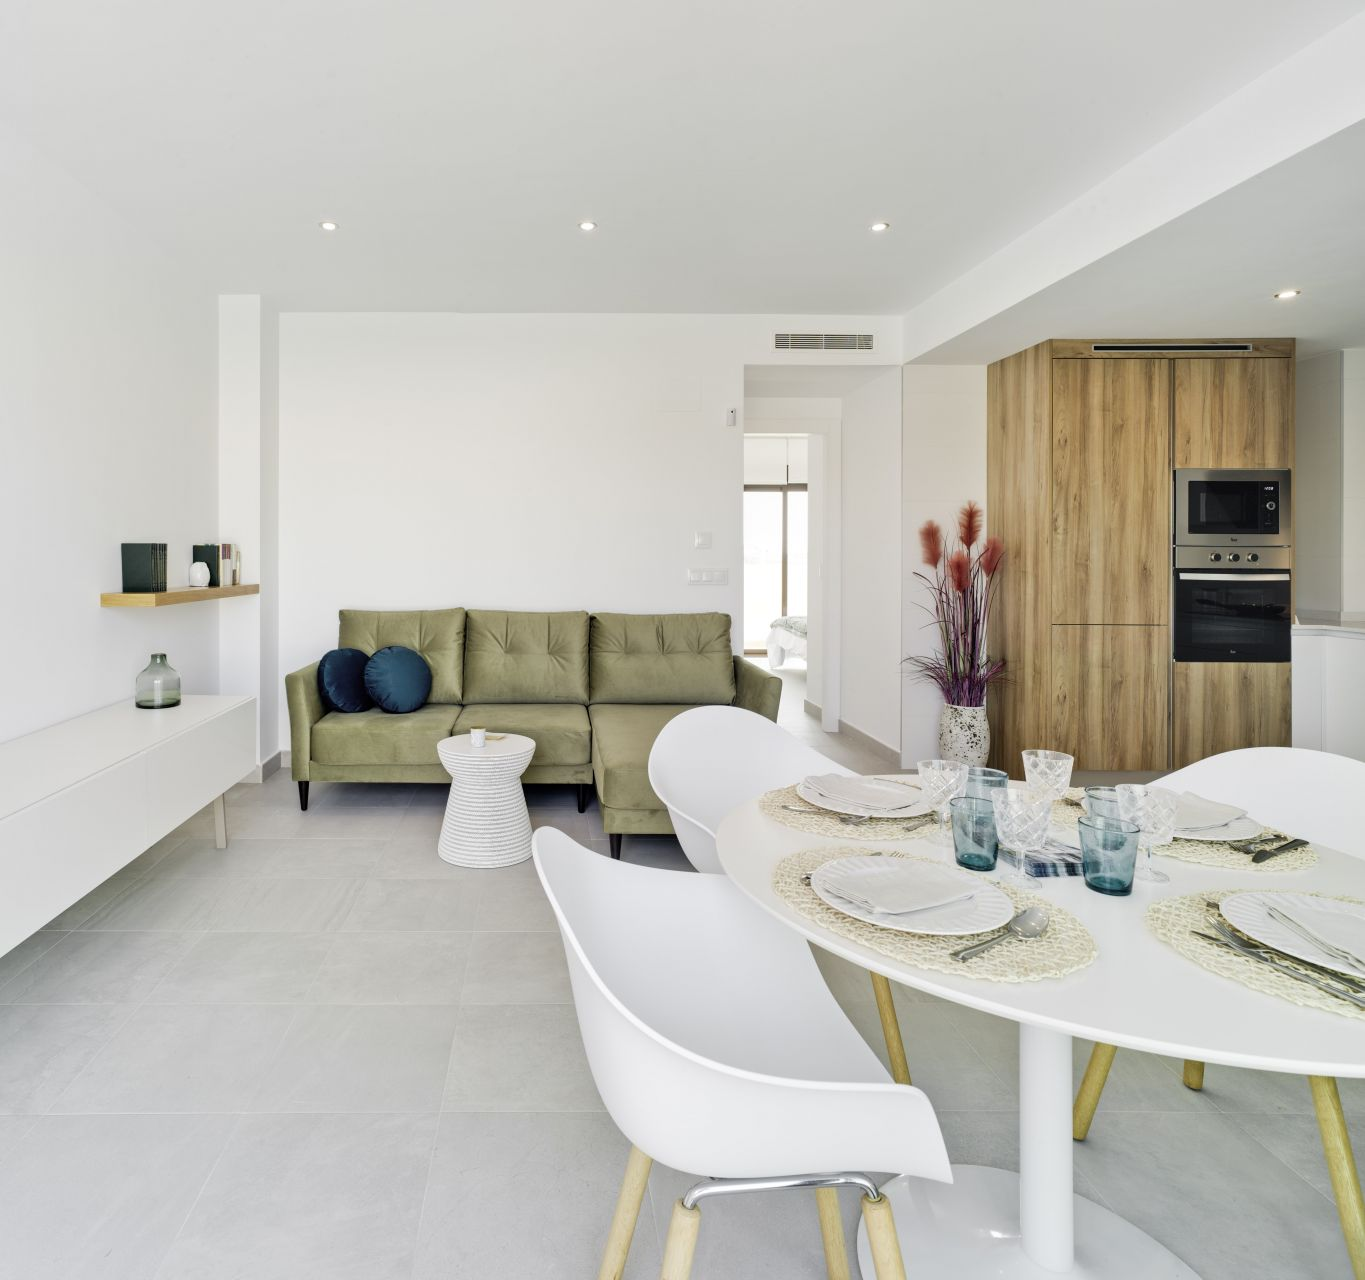 Modern 2 and 3 bedroom apartments in the city center of Pilar de la Horadada 10